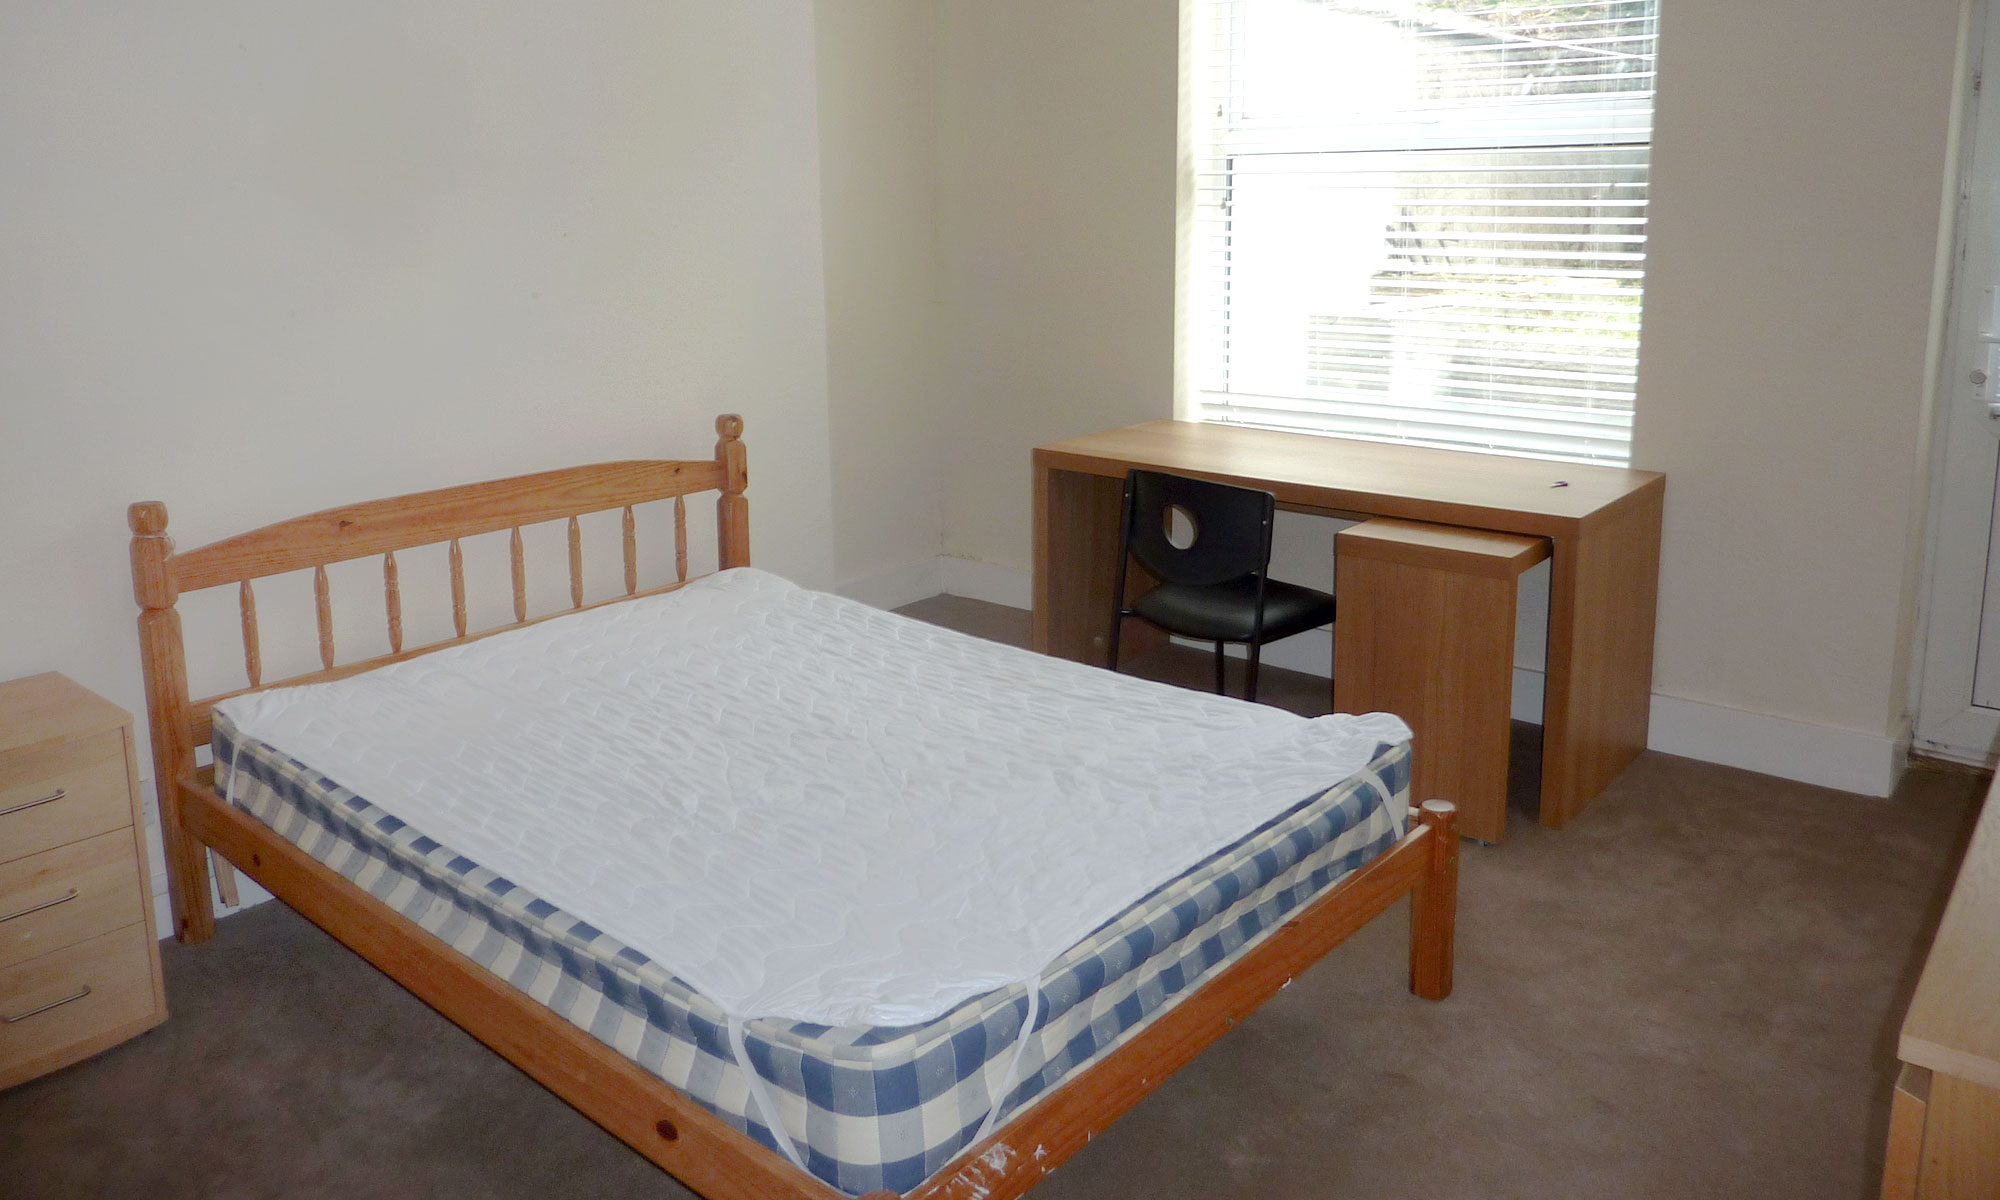 Powis-Grove-two-bedroom-bedroom-1-2